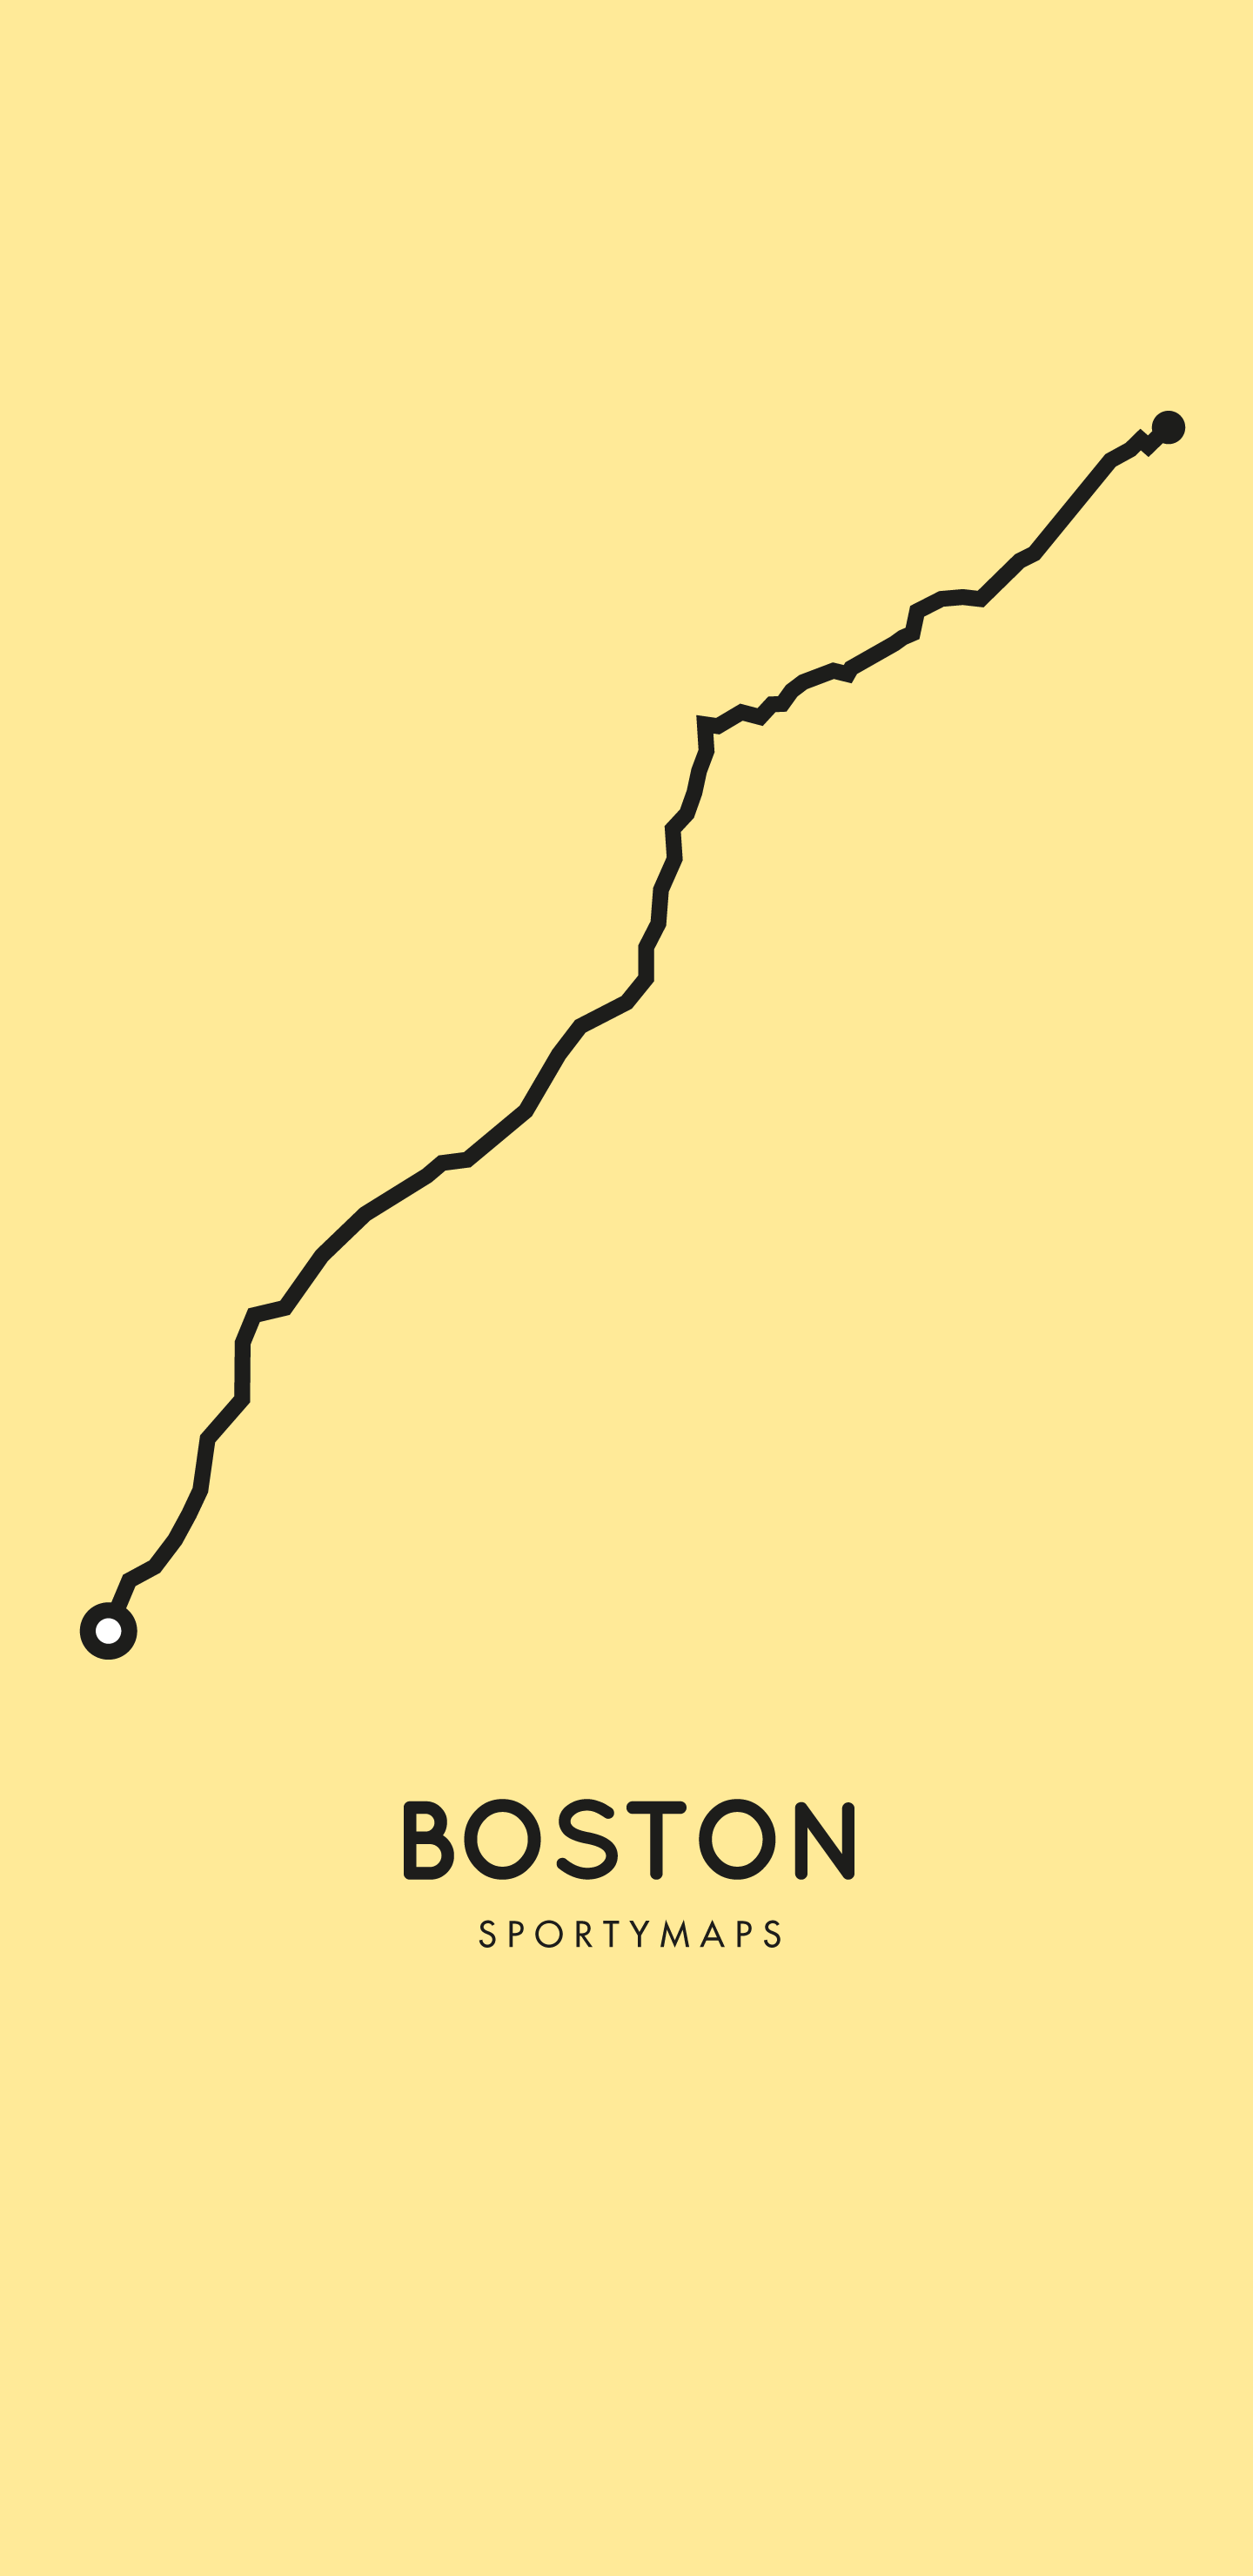 Sportymaps-Boston-marathon-yellow